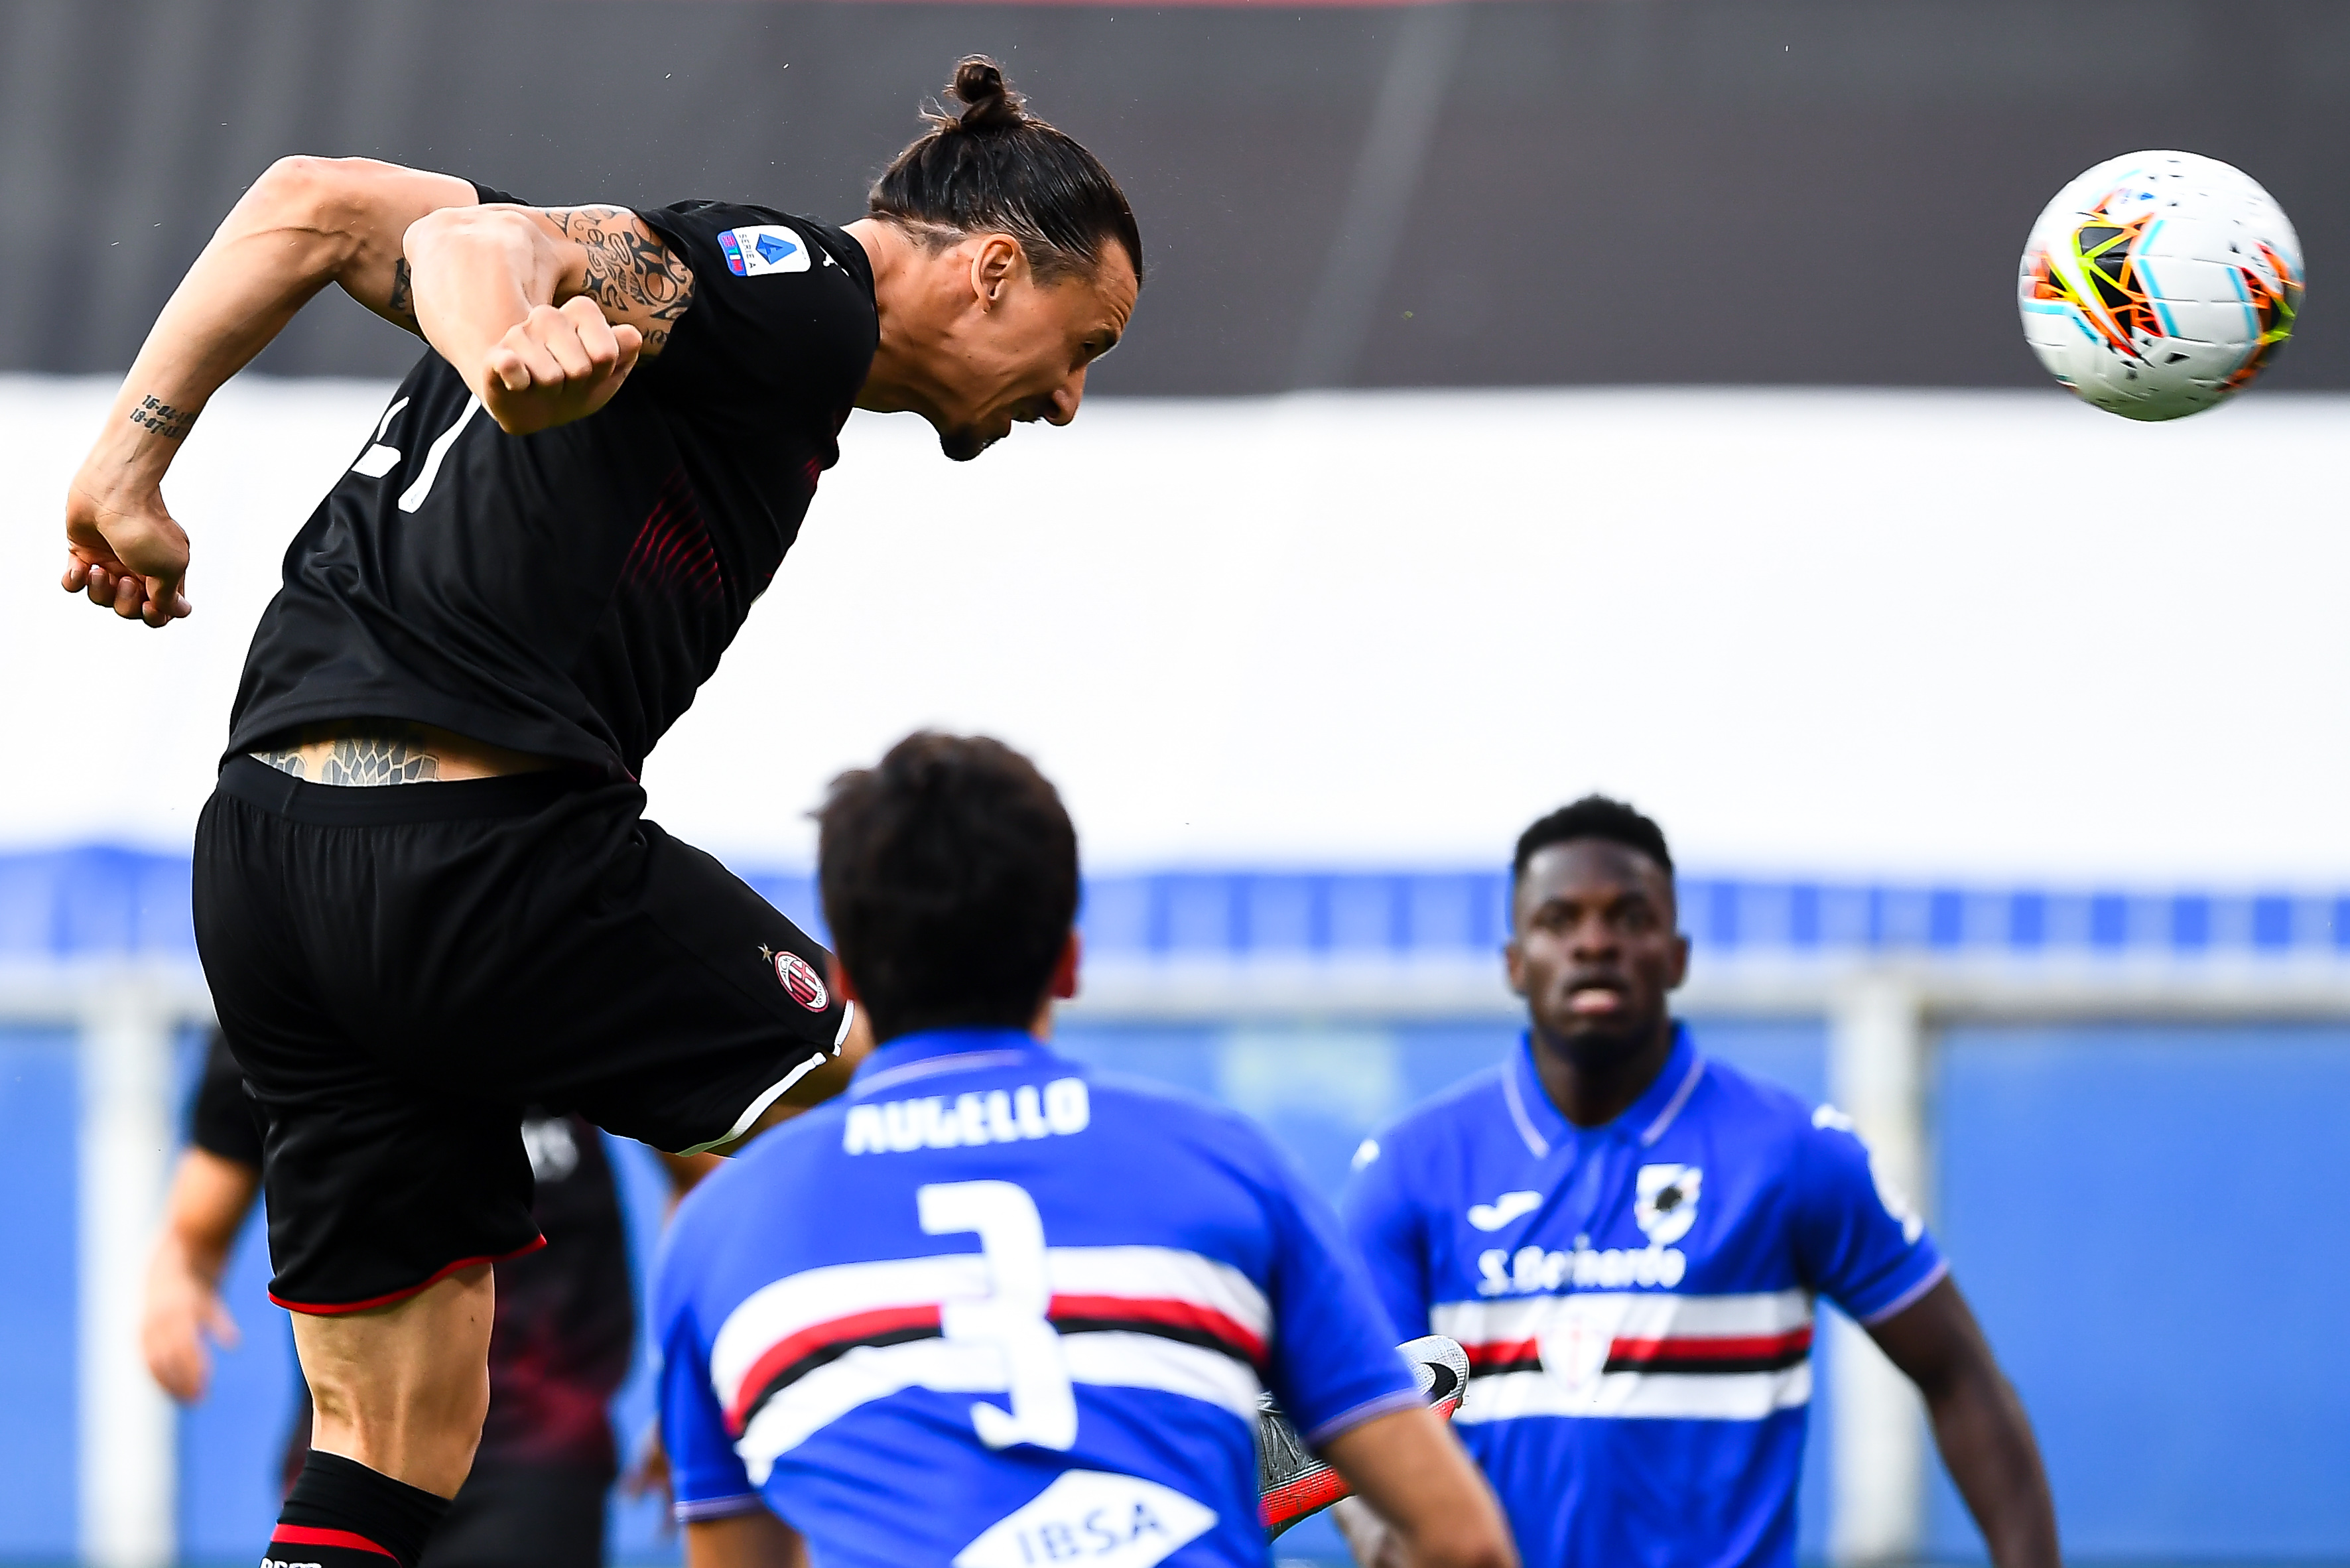 Zlatan Ibrahimovic compares himself to Benjamin Button after reaching new scoring milestone in Italy